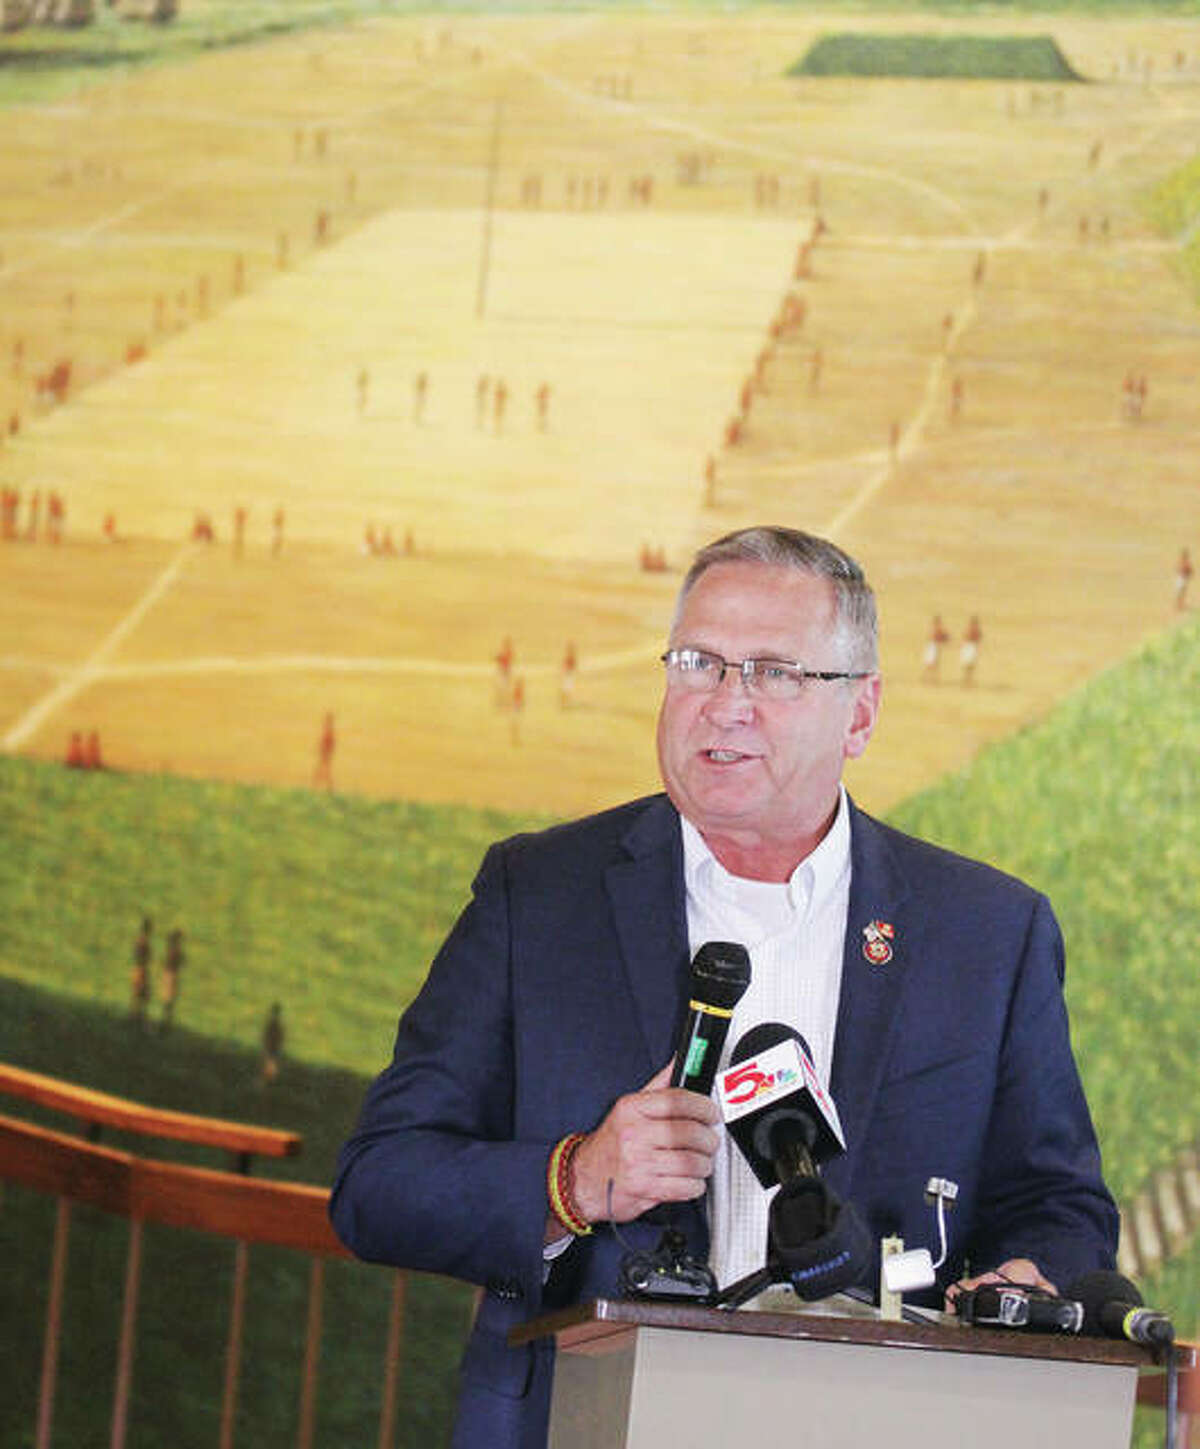 U.S. Rep. Mike Bost, R-Murphysboro, talks Tuesday in front of a mural depicting the ancient city of Cahokia at its height during a press conference at the Cahokia Mounds State Historic Site Interpretive Center. The mural depicts the city's residents playing a game called Chunkey. Bost has introduced legislation to elevate Cahokia Mounds and related local sites to national park status.